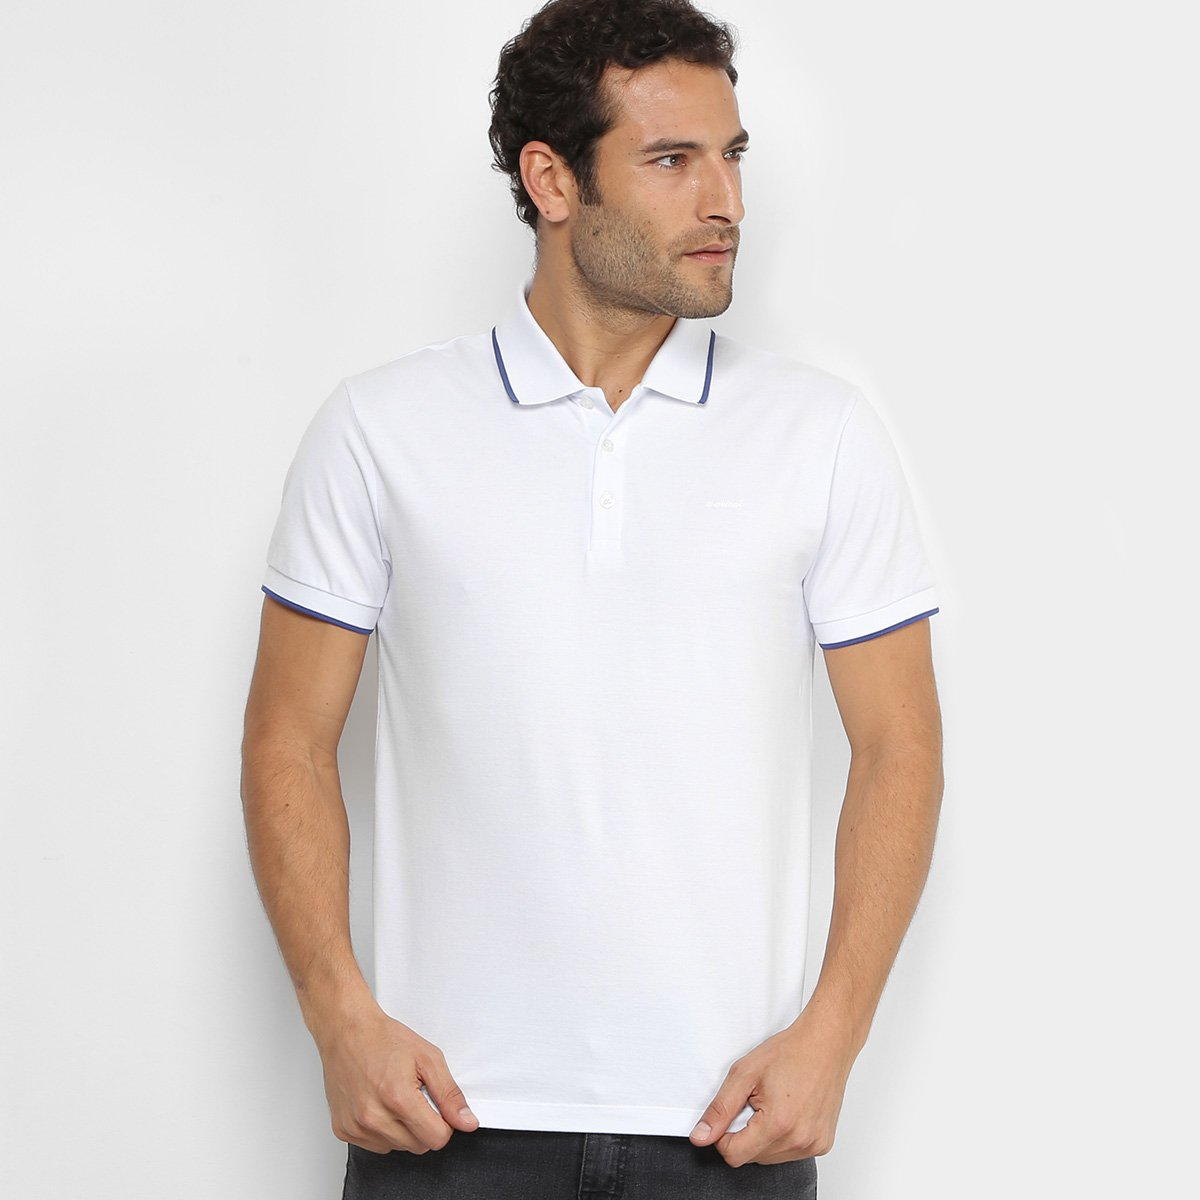 4123a8010 Camisa Polo Colcci Piquet Friso Contraste Masculina. undefined